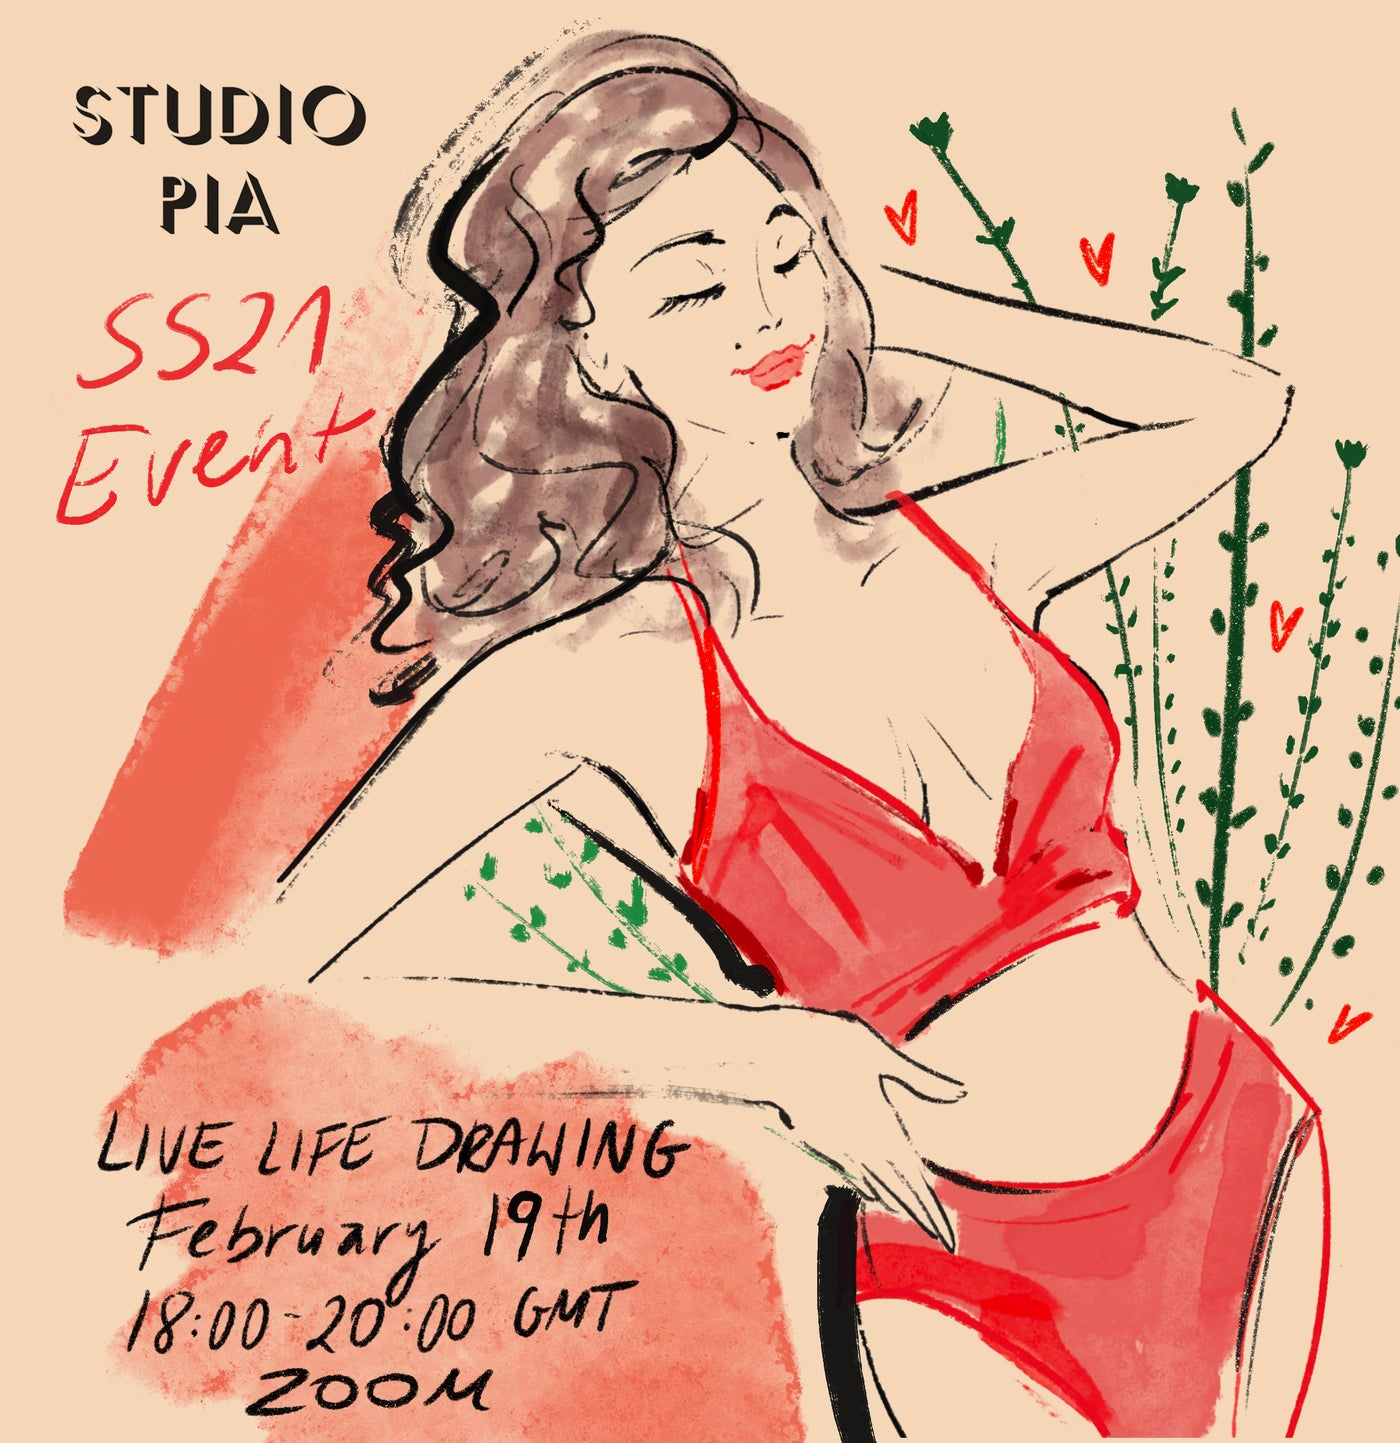 SS21 Online Life Drawing Event